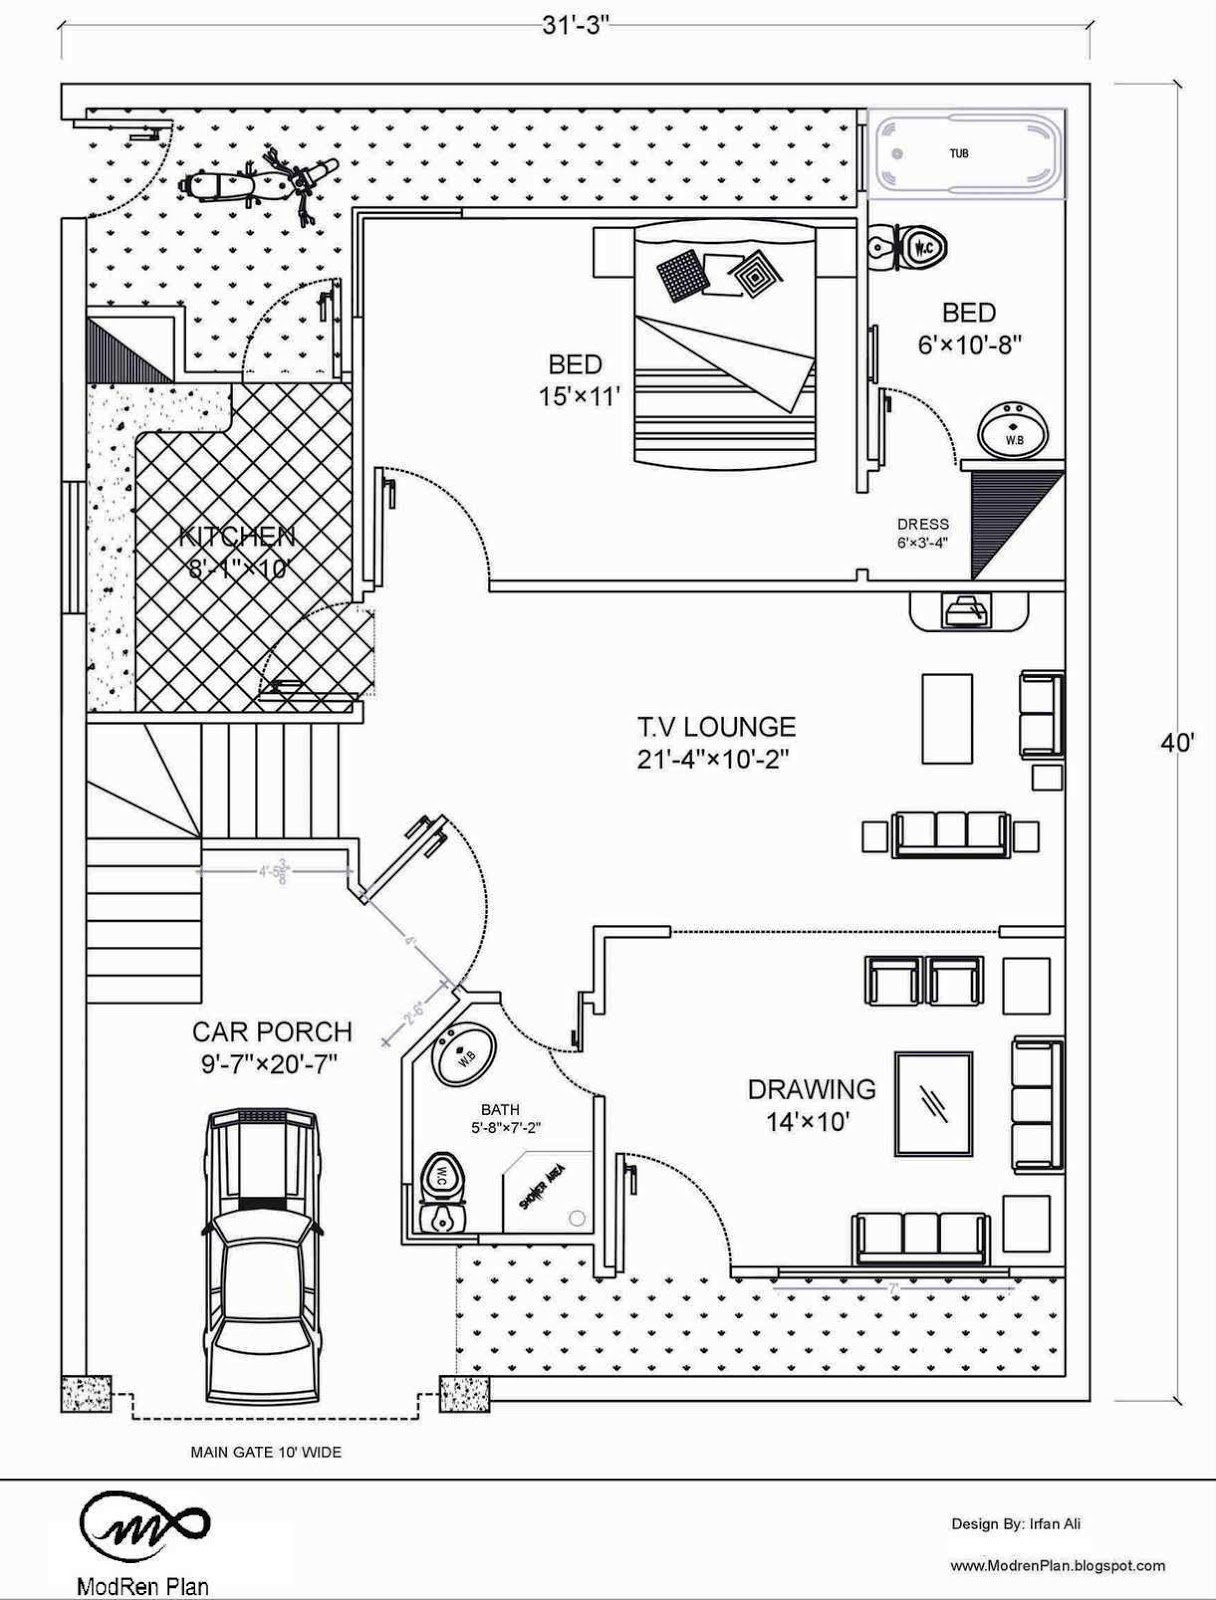 Marla house Plan and map   Detail   x House Plan  Marla Floor Plan   x Feet